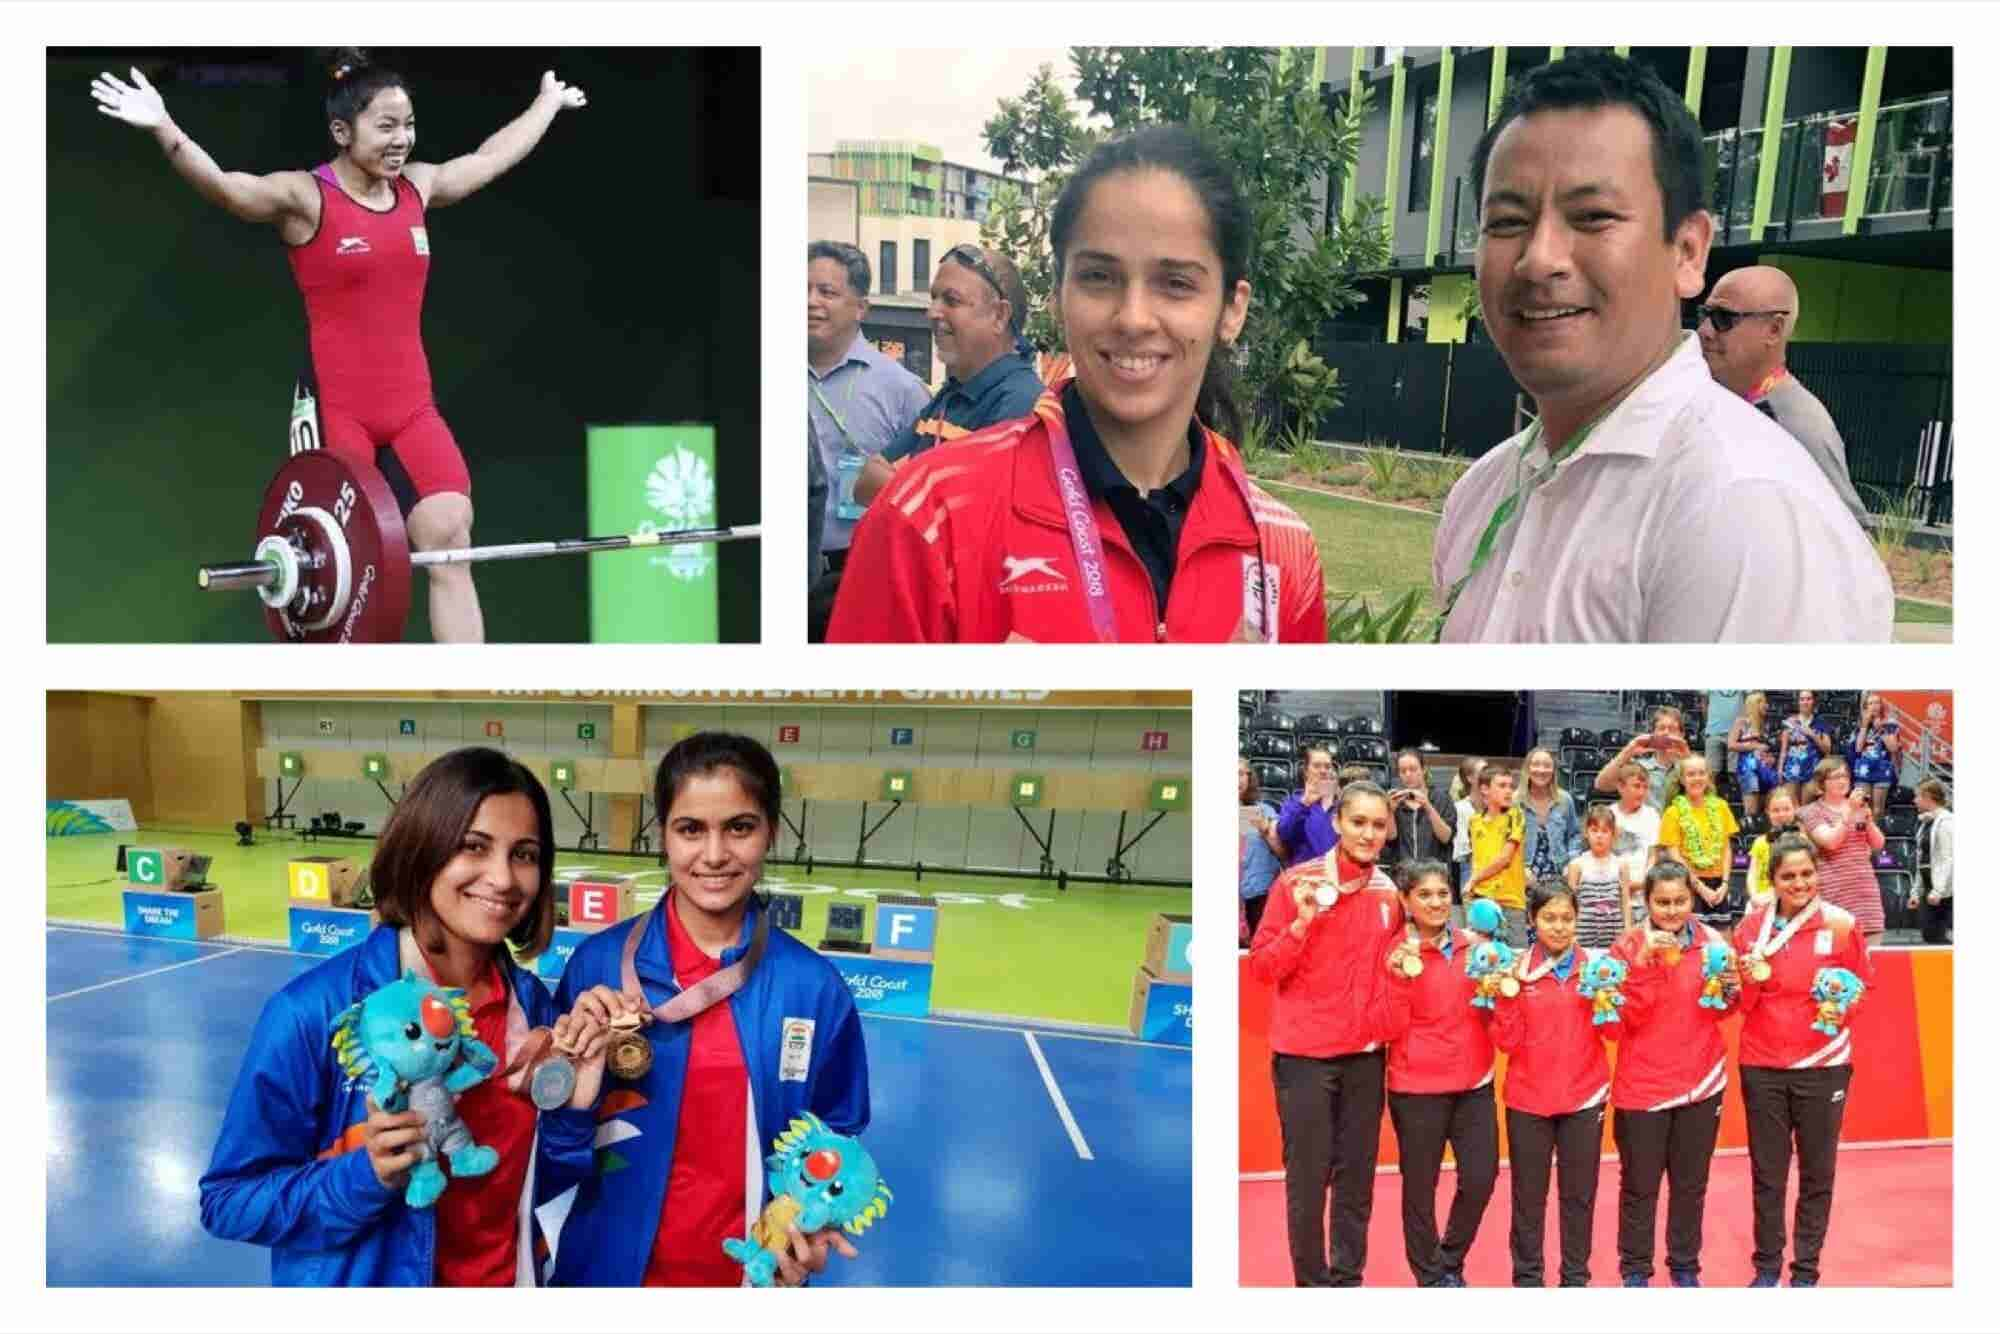 The Golden Girls of India are Shining Bright at 2018 Commonwealth Games